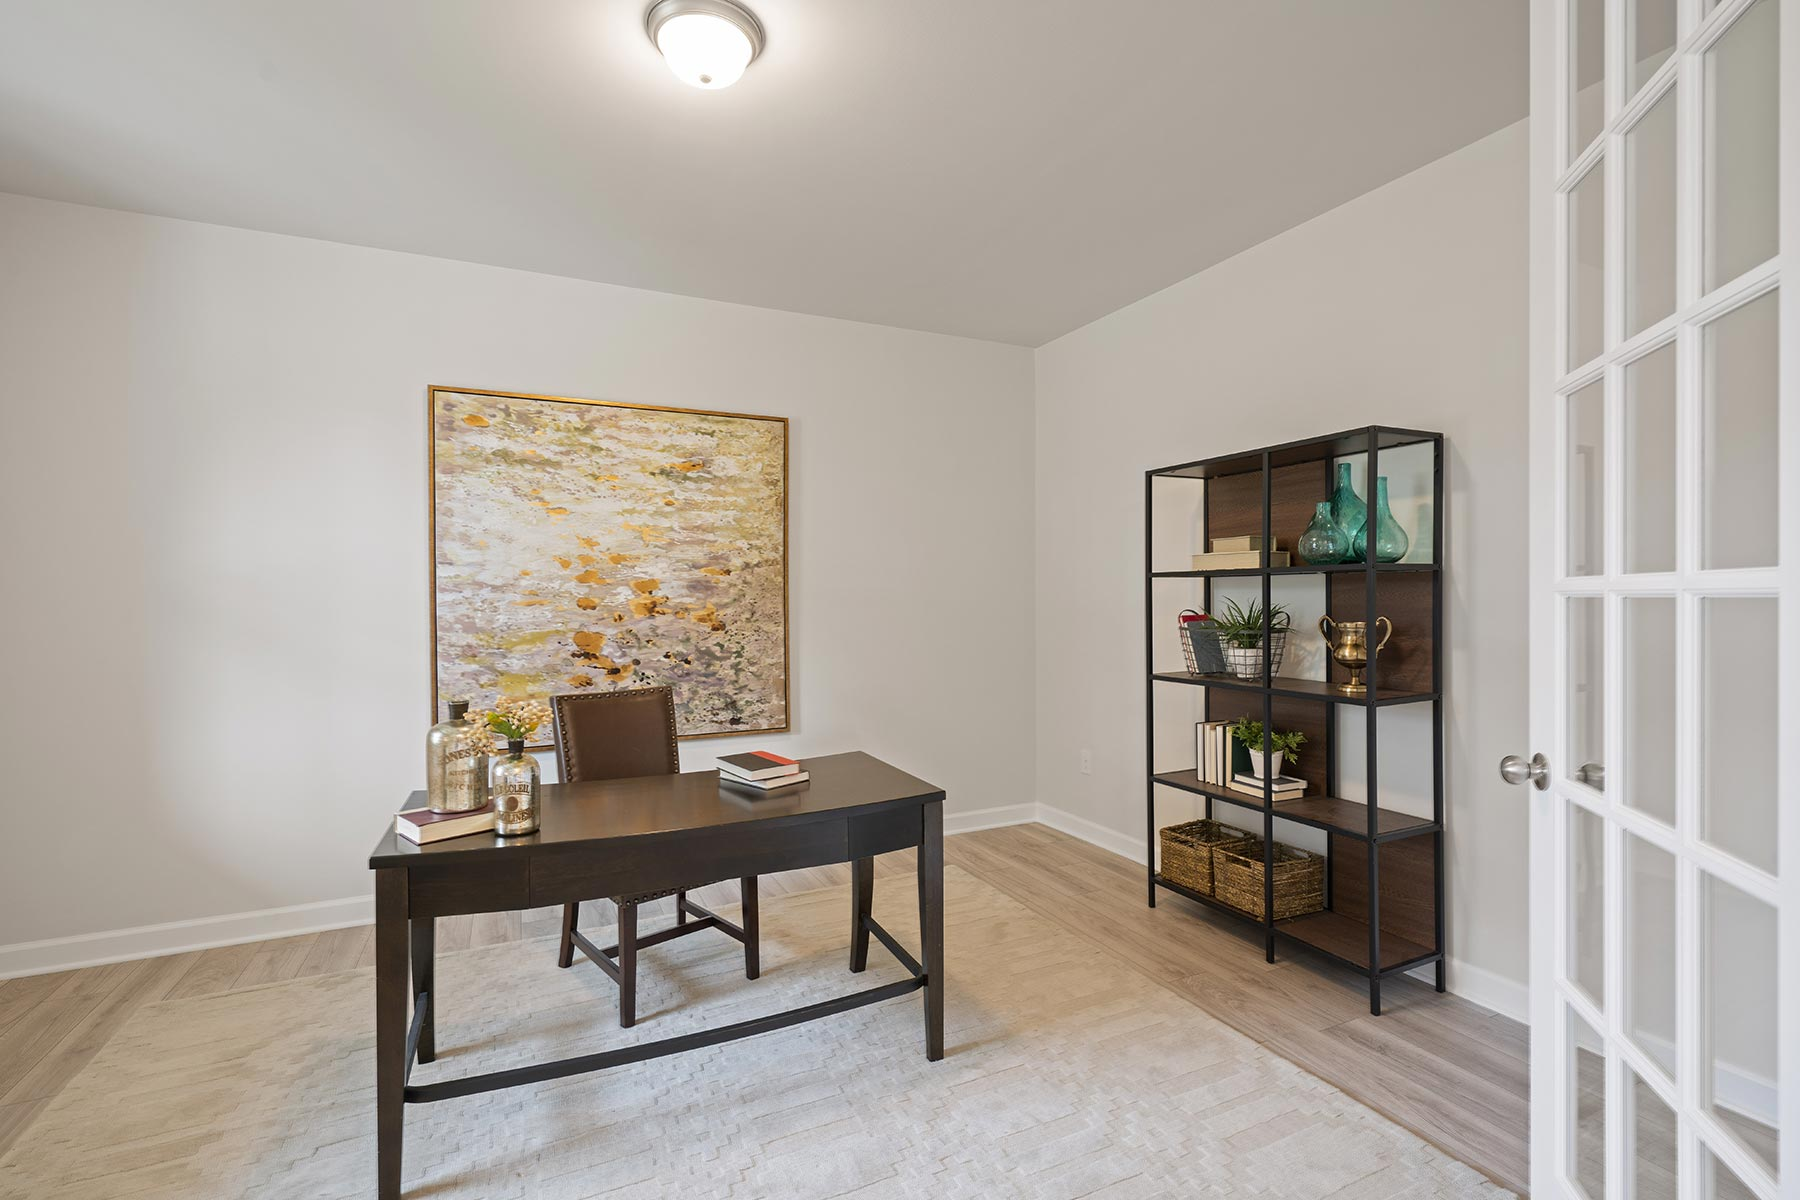 Hamilton Plan Study Room at Fairview Park in Cary North Carolina by Mattamy Homes